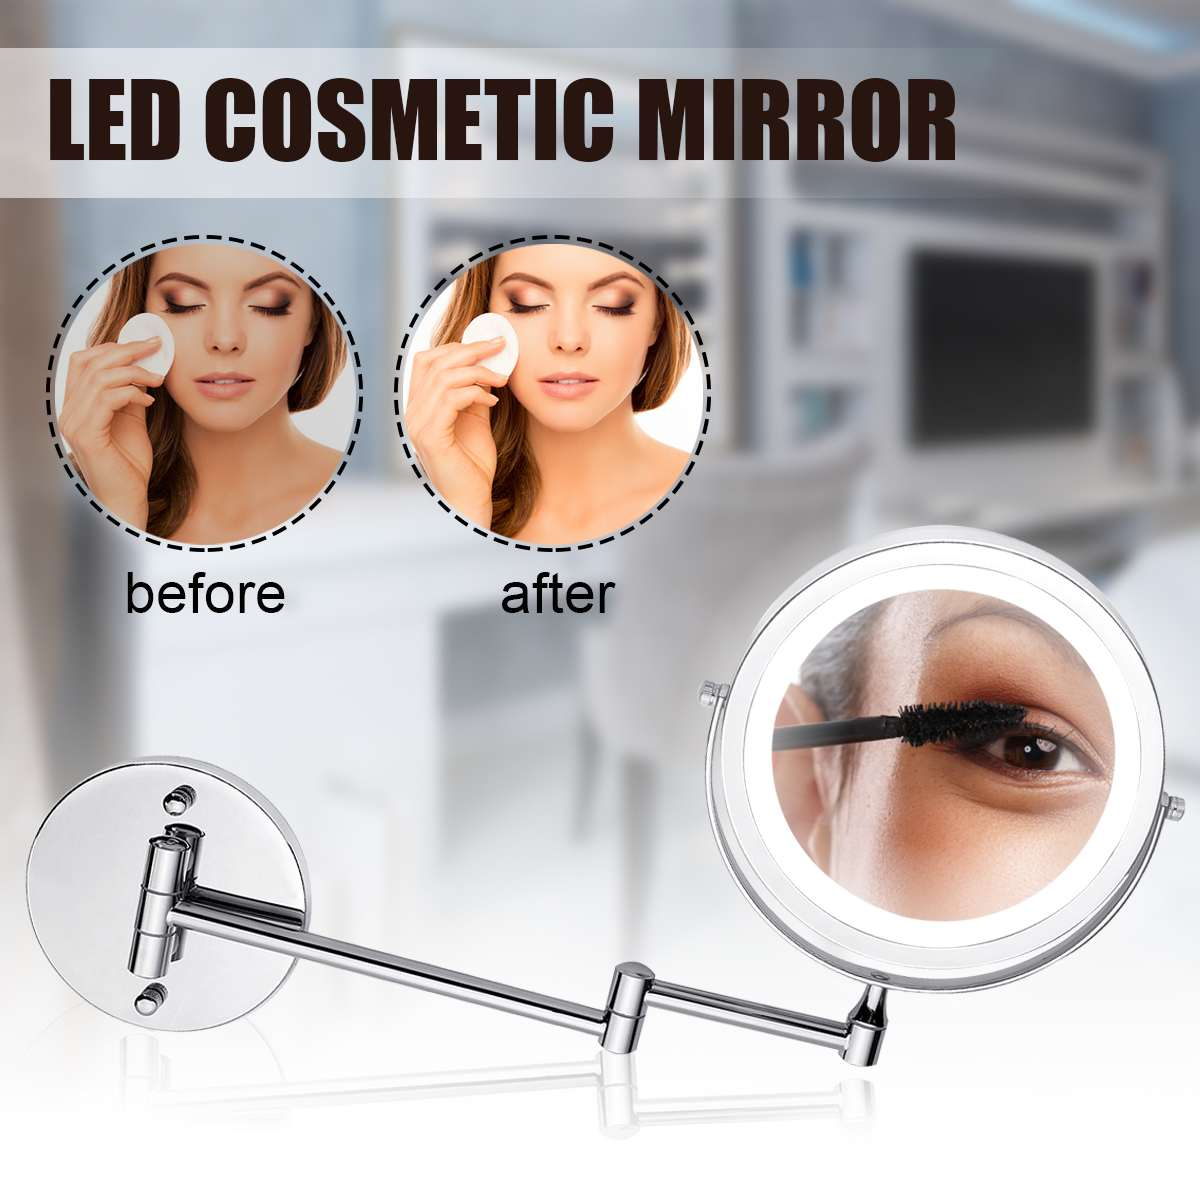 7 Makeup Vanity Mirror with Light LED 5X Magnification Mounted Telescopic Enlargement 2-Face Bathroom Wall Cosmetic Mirror7 Makeup Vanity Mirror with Light LED 5X Magnification Mounted Telescopic Enlargement 2-Face Bathroom Wall Cosmetic Mirror